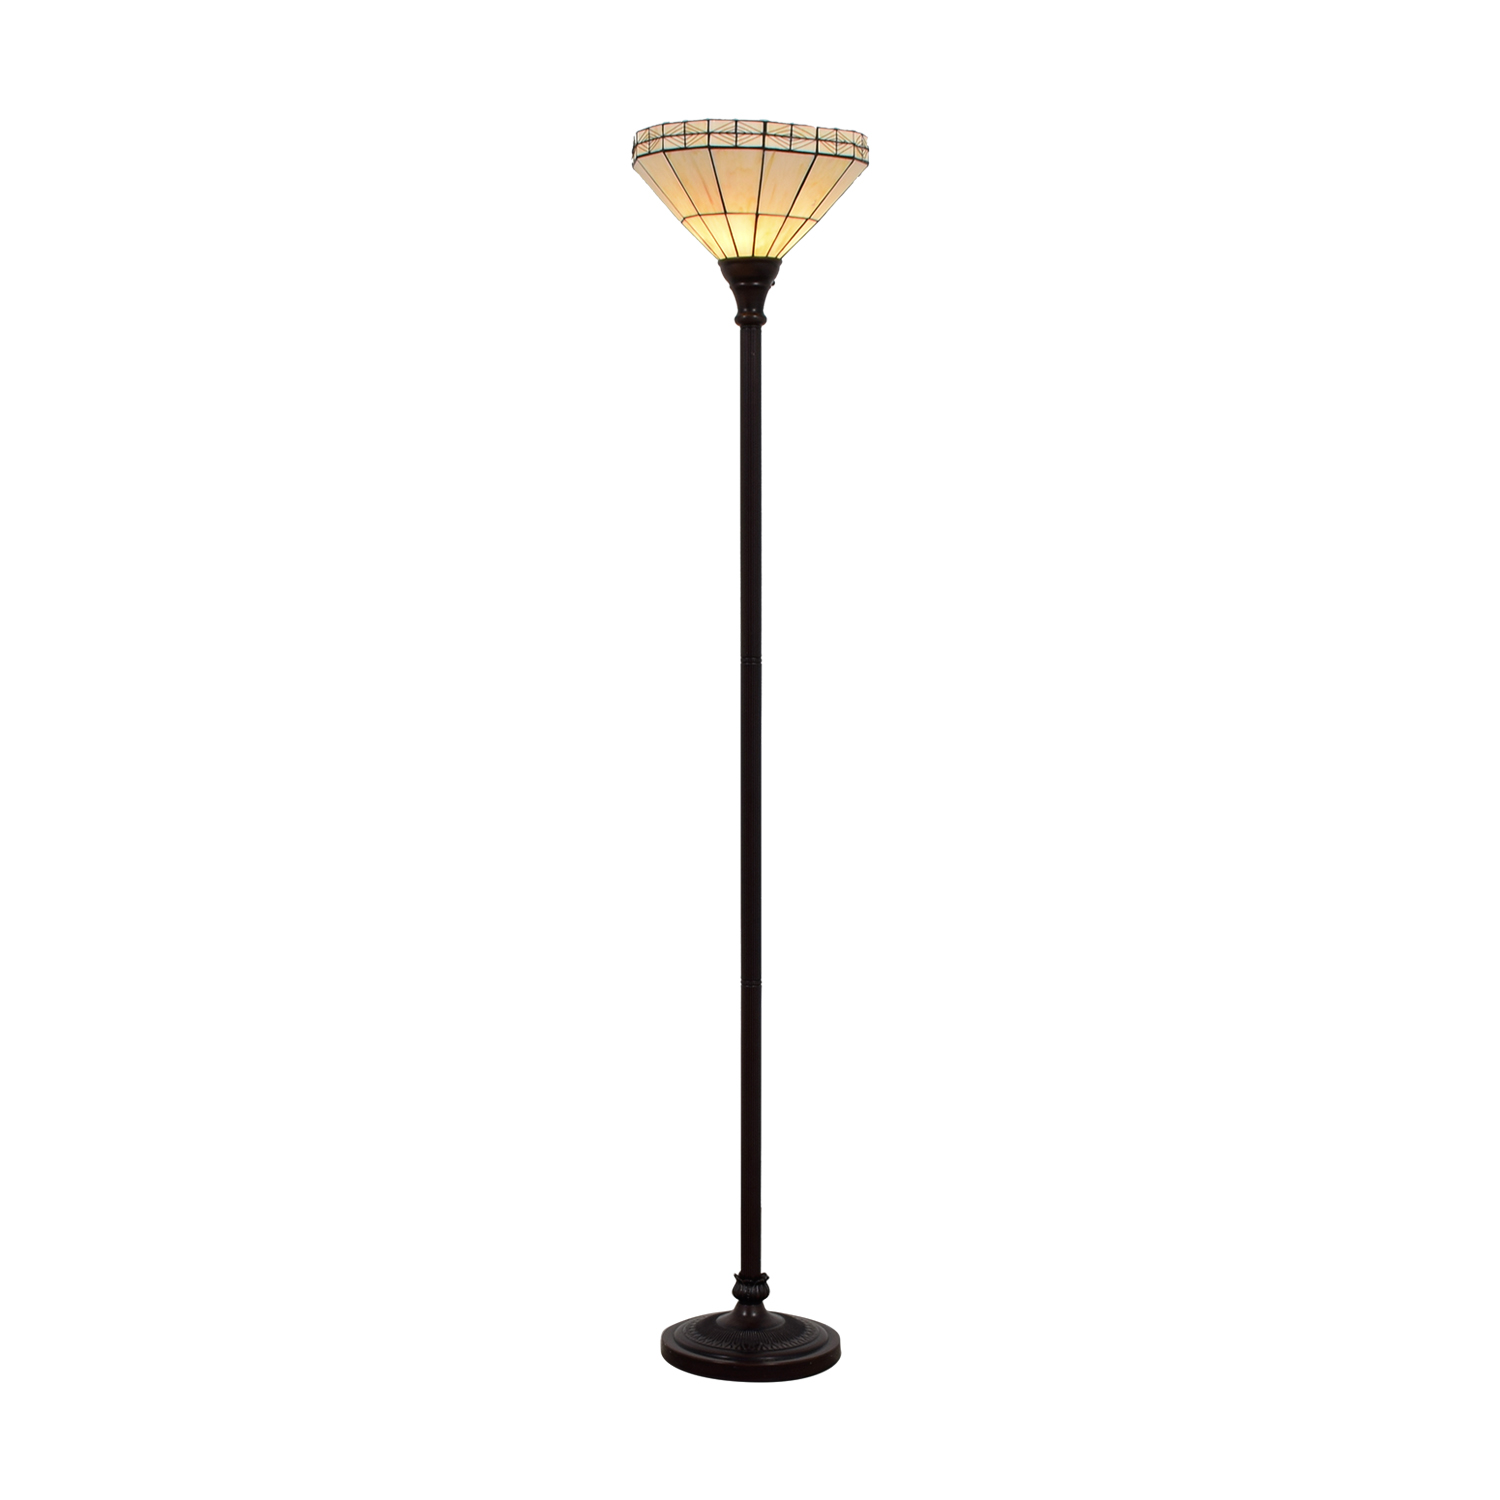 White Tiffany Inspired Floor Lamp dimensions